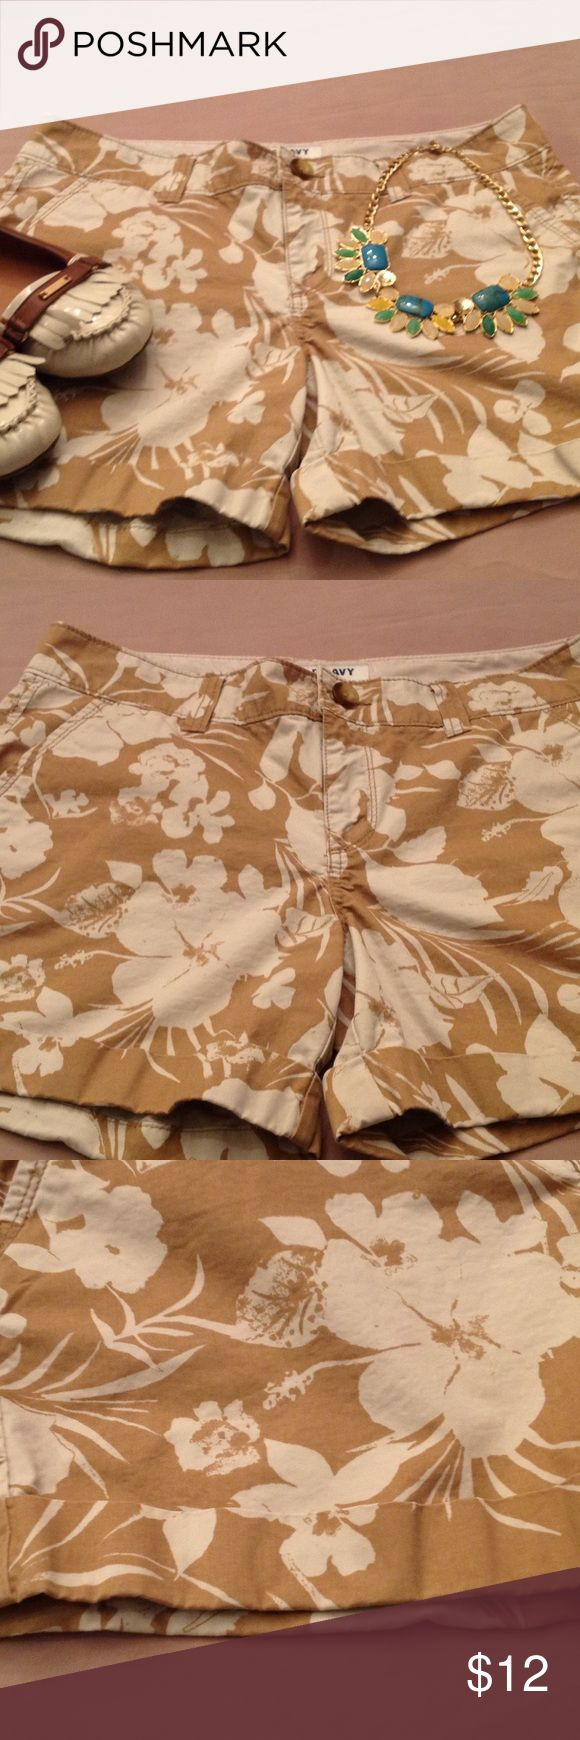 Old Navy shorts, Size 8......Cute!💝 Really cute beige and white Old Navy shorts. Old Navy Shorts